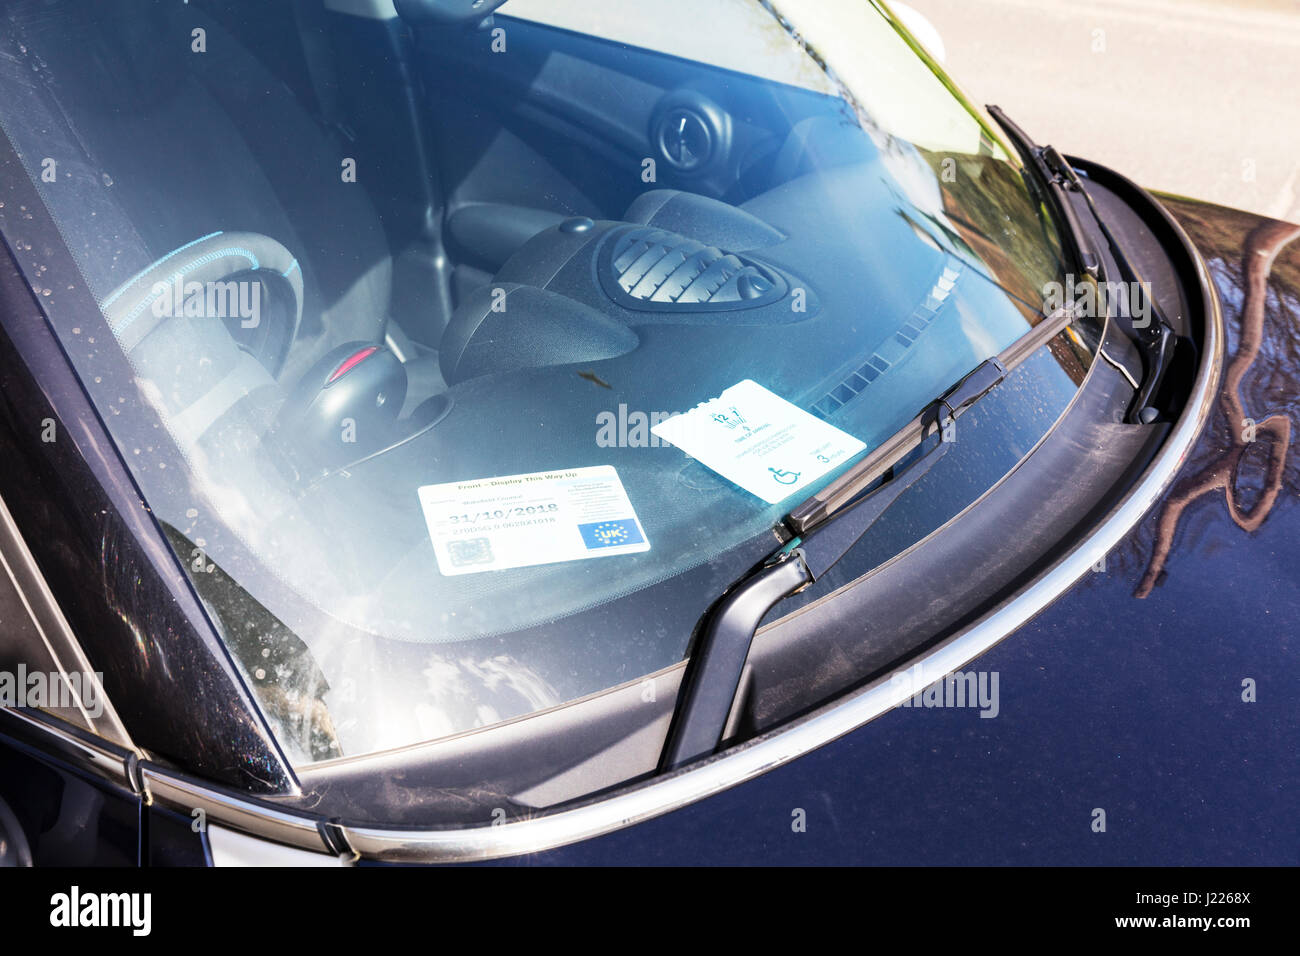 disabled parking badge in car window free car park space for badge holders UK England disability parking badge - Stock Image